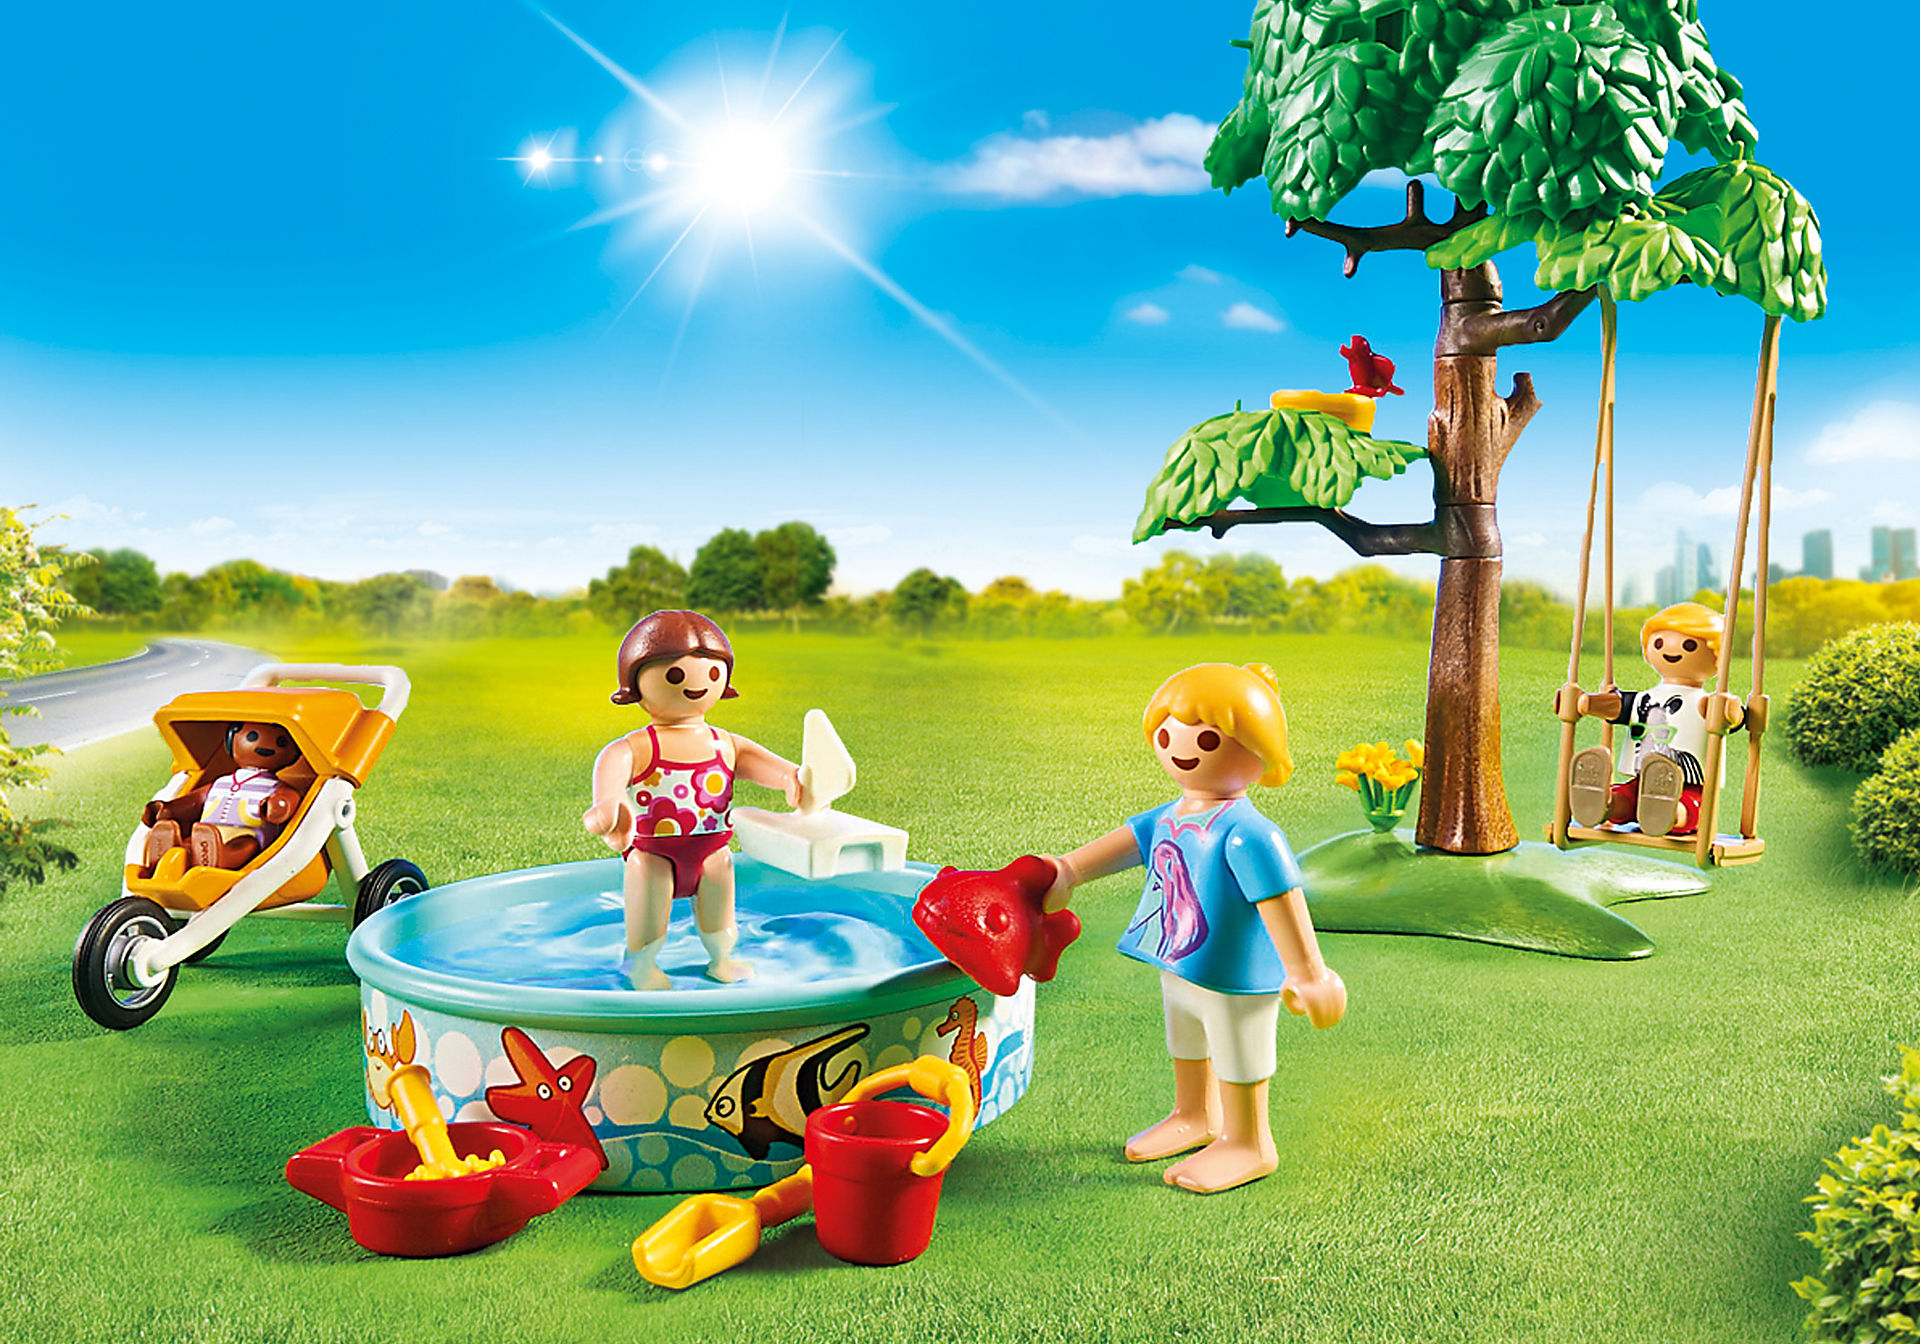 http://media.playmobil.com/i/playmobil/9272_product_extra1/Einweihungsparty